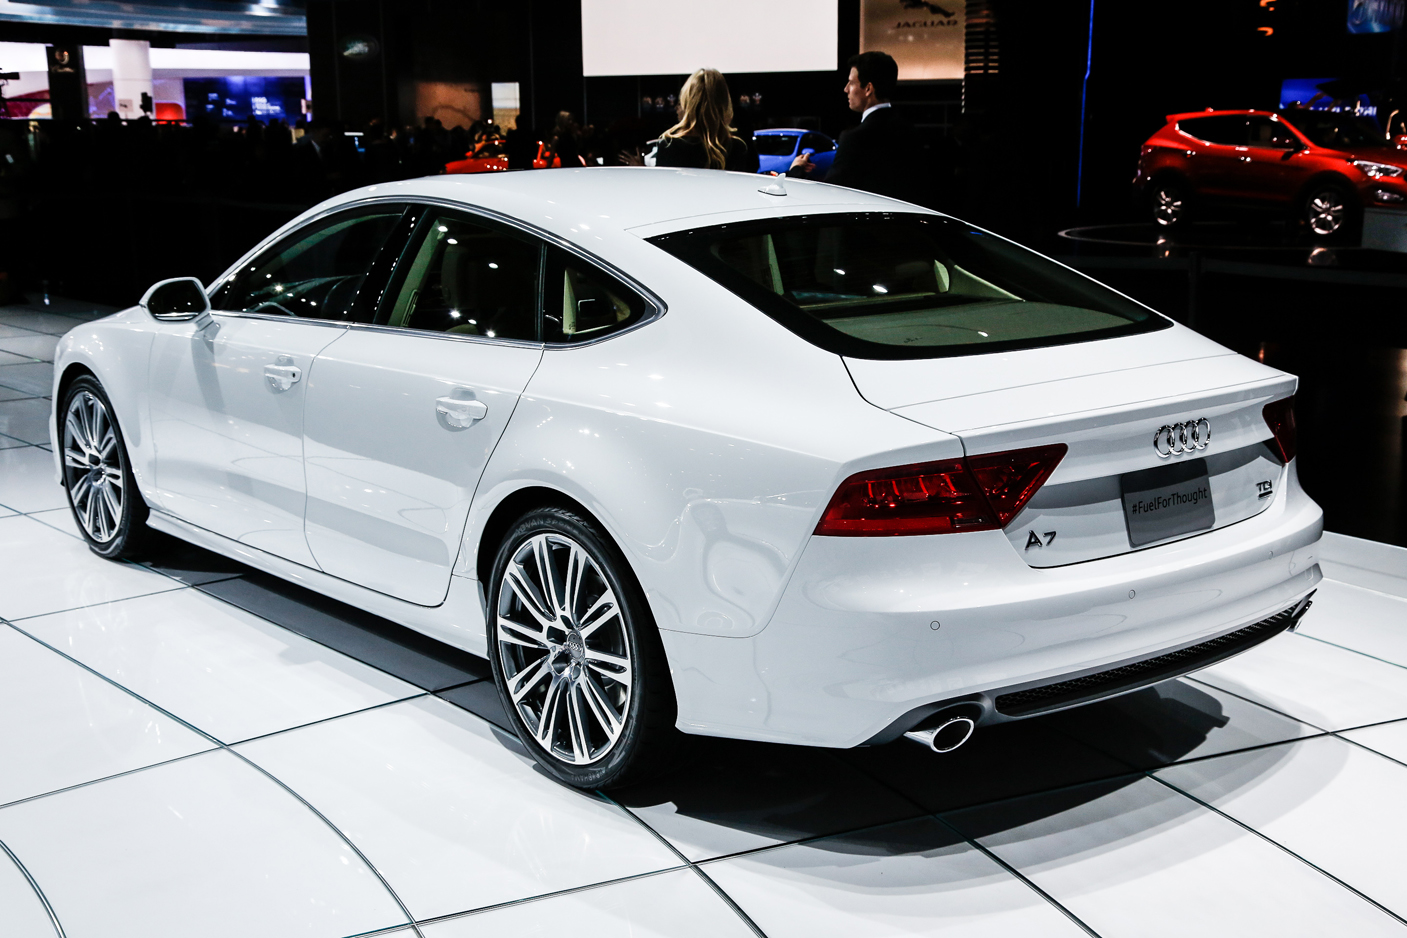 Audi A4 Oil Change Cost >> Guest Post: A Reader's Luxury Cars of 2013